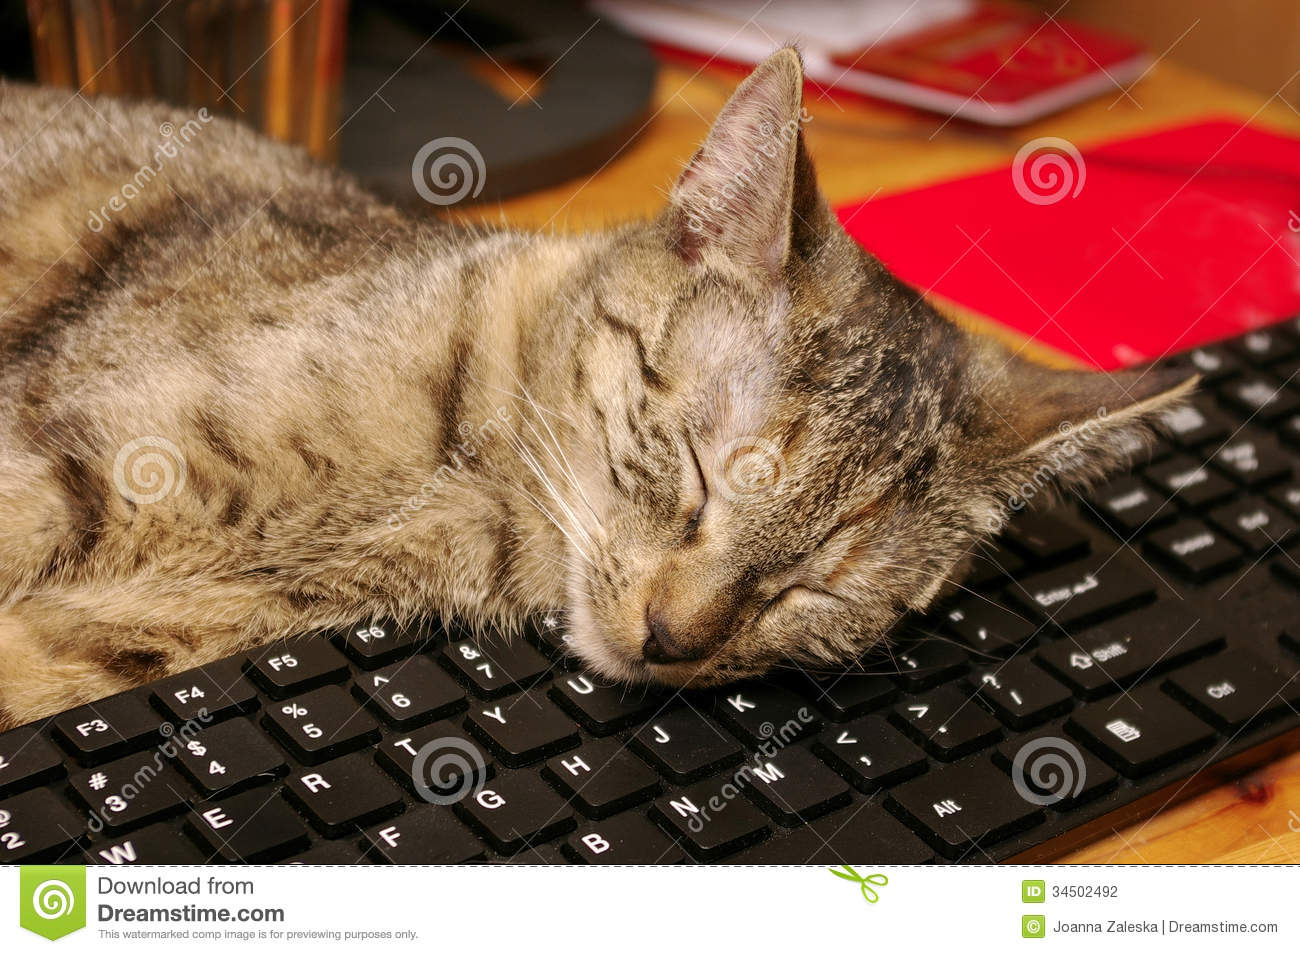 Cat and keyboard stock photo. Image of friend, bored ...